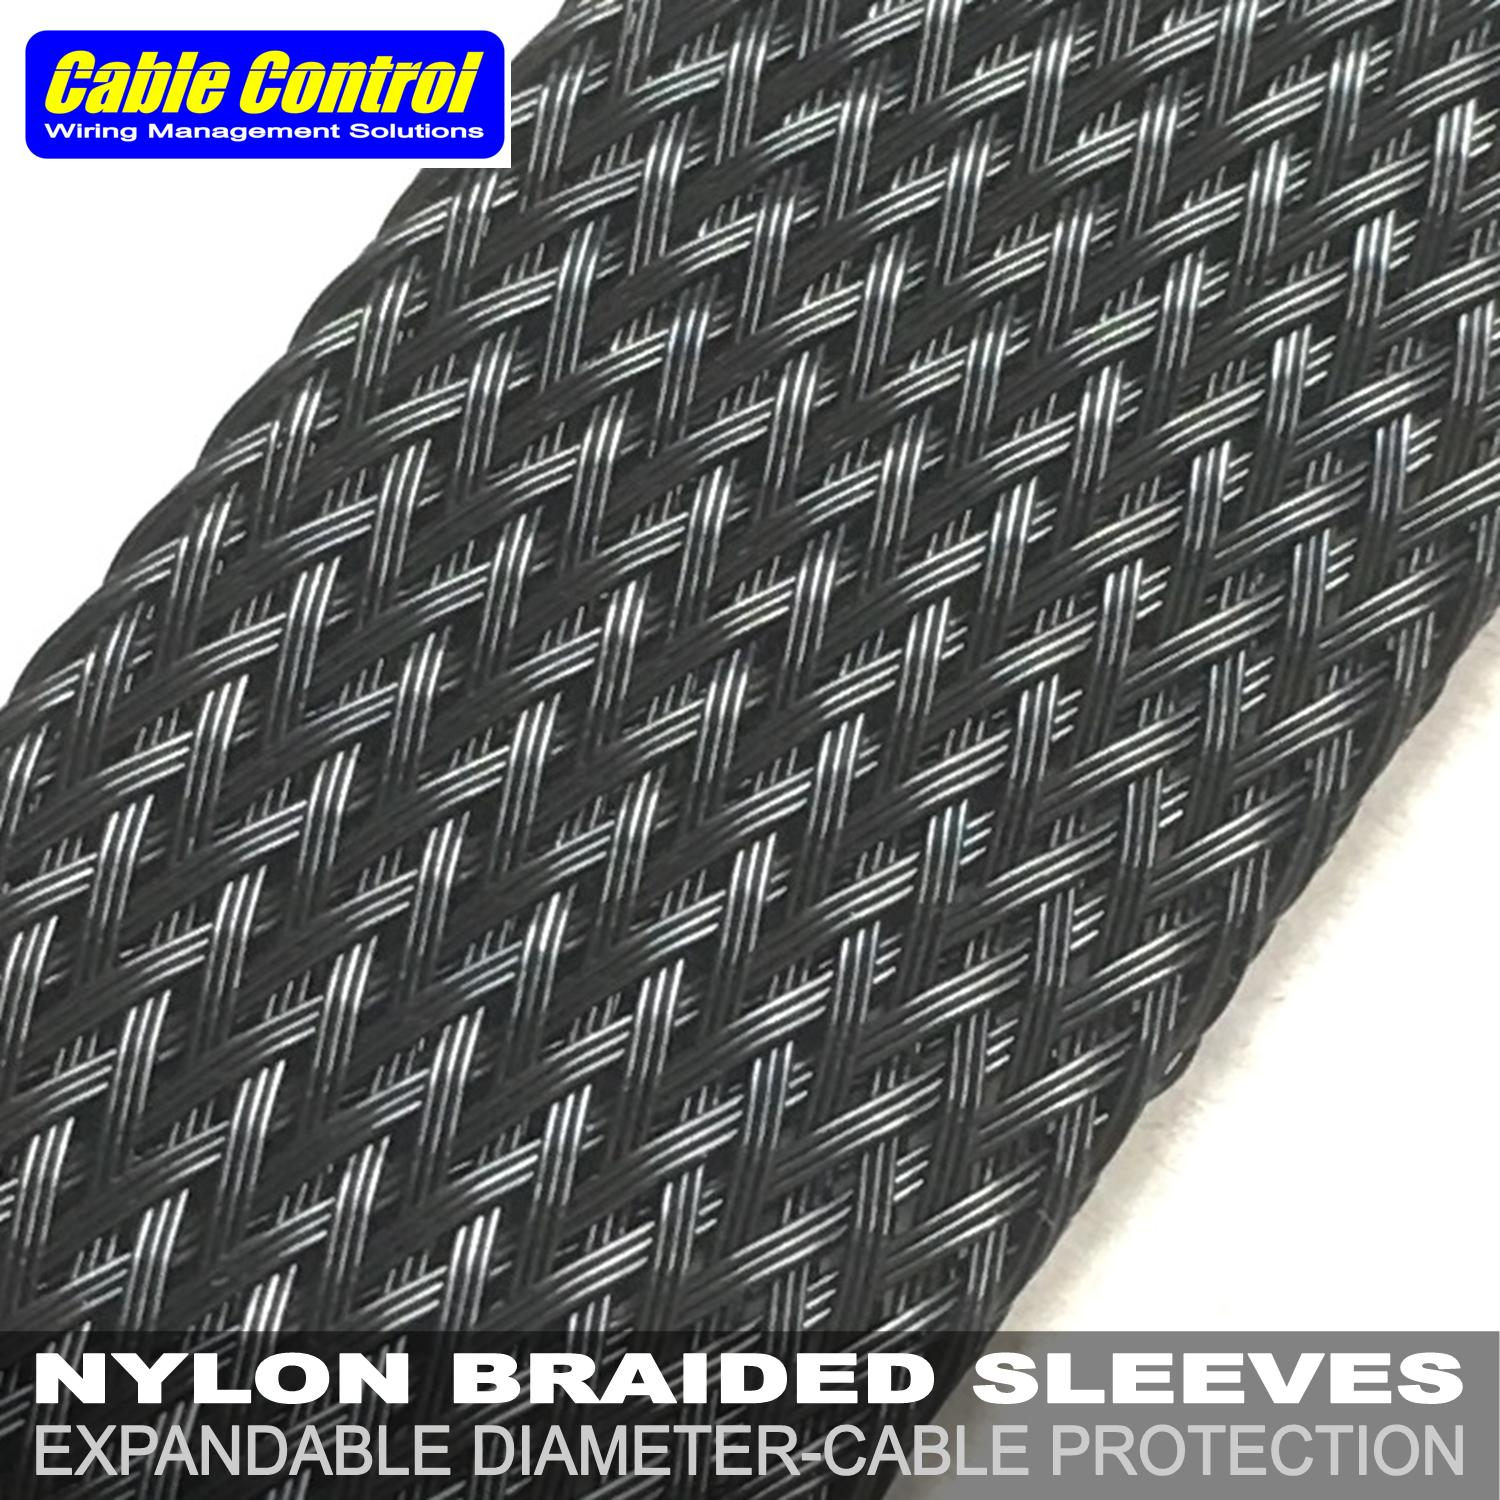 Cable Control Expandable Nylon ided Sleeves 25mm Black , Wire sleeve on